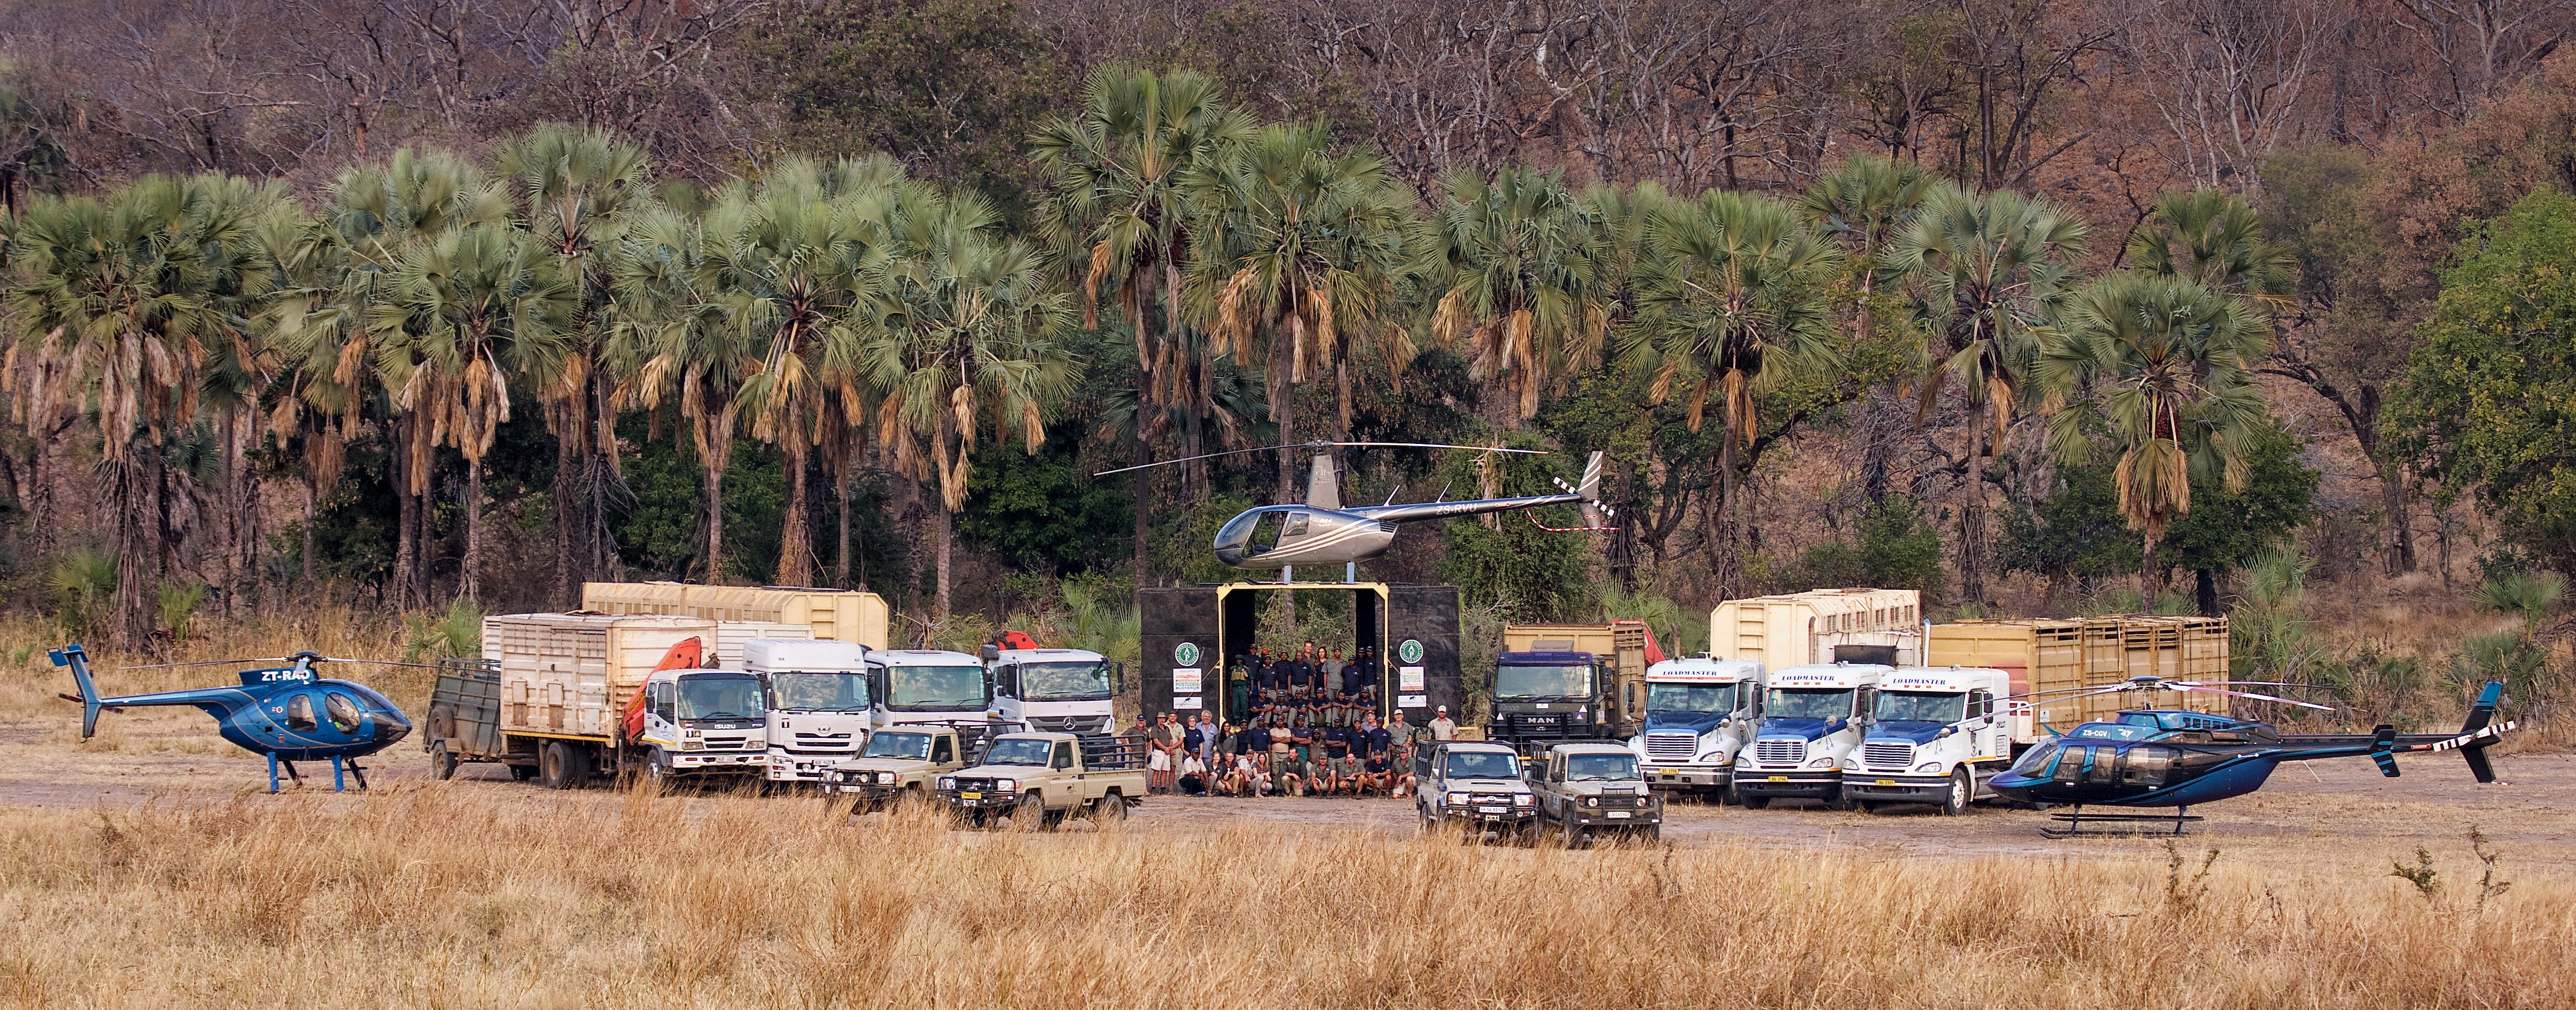 What it takes to move 500 elephants: all this equipment was brought up from South Africa as part of this massive operation. Photo by Frank Weitzer.